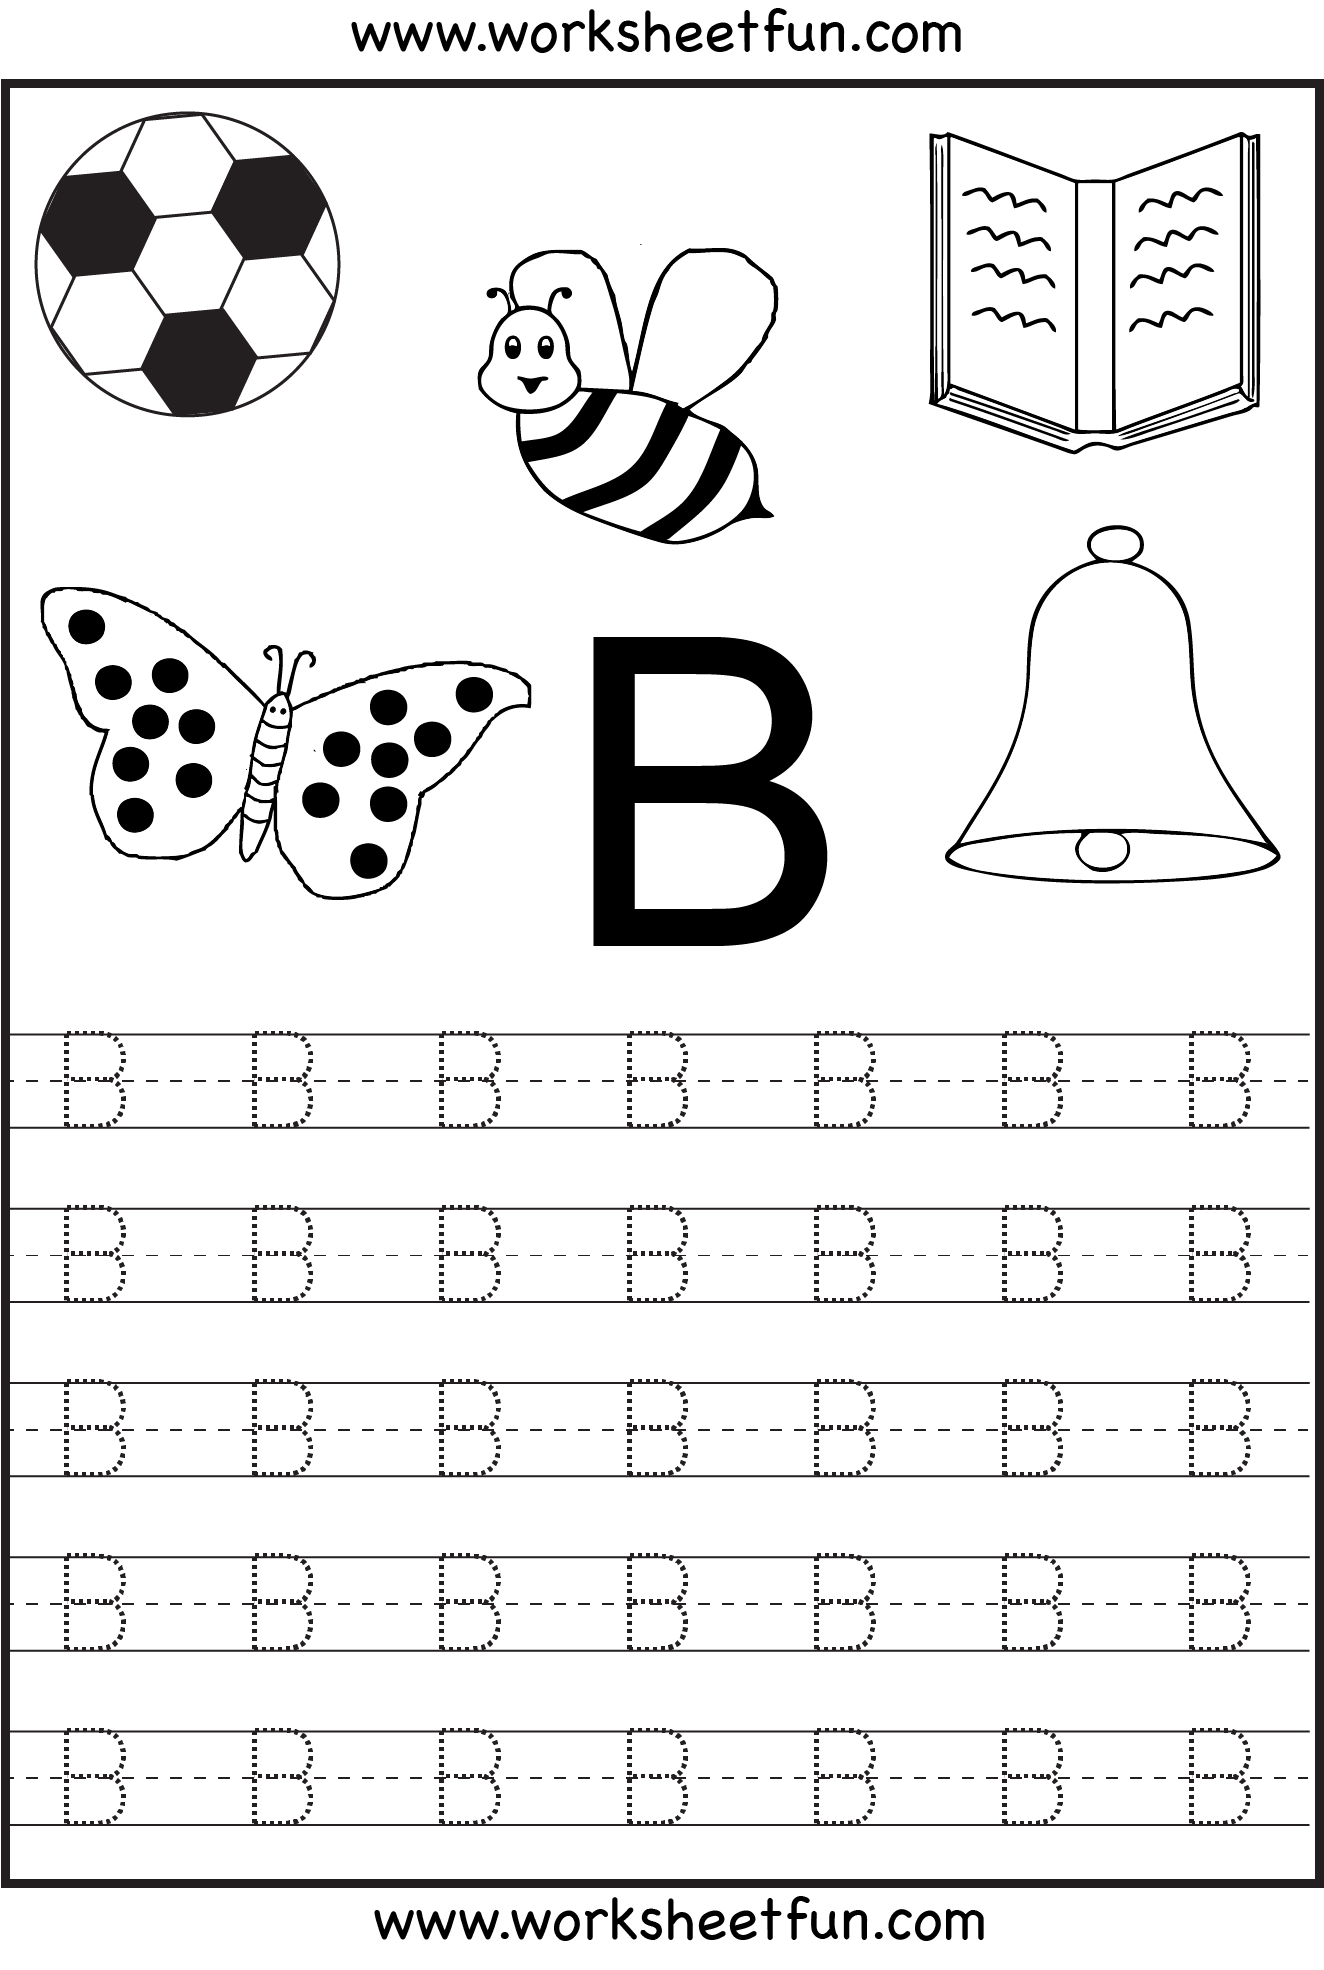 Free Printable Letter Tracing Worksheets For Kindergarten pertaining to Kindergarten Letter Tracing